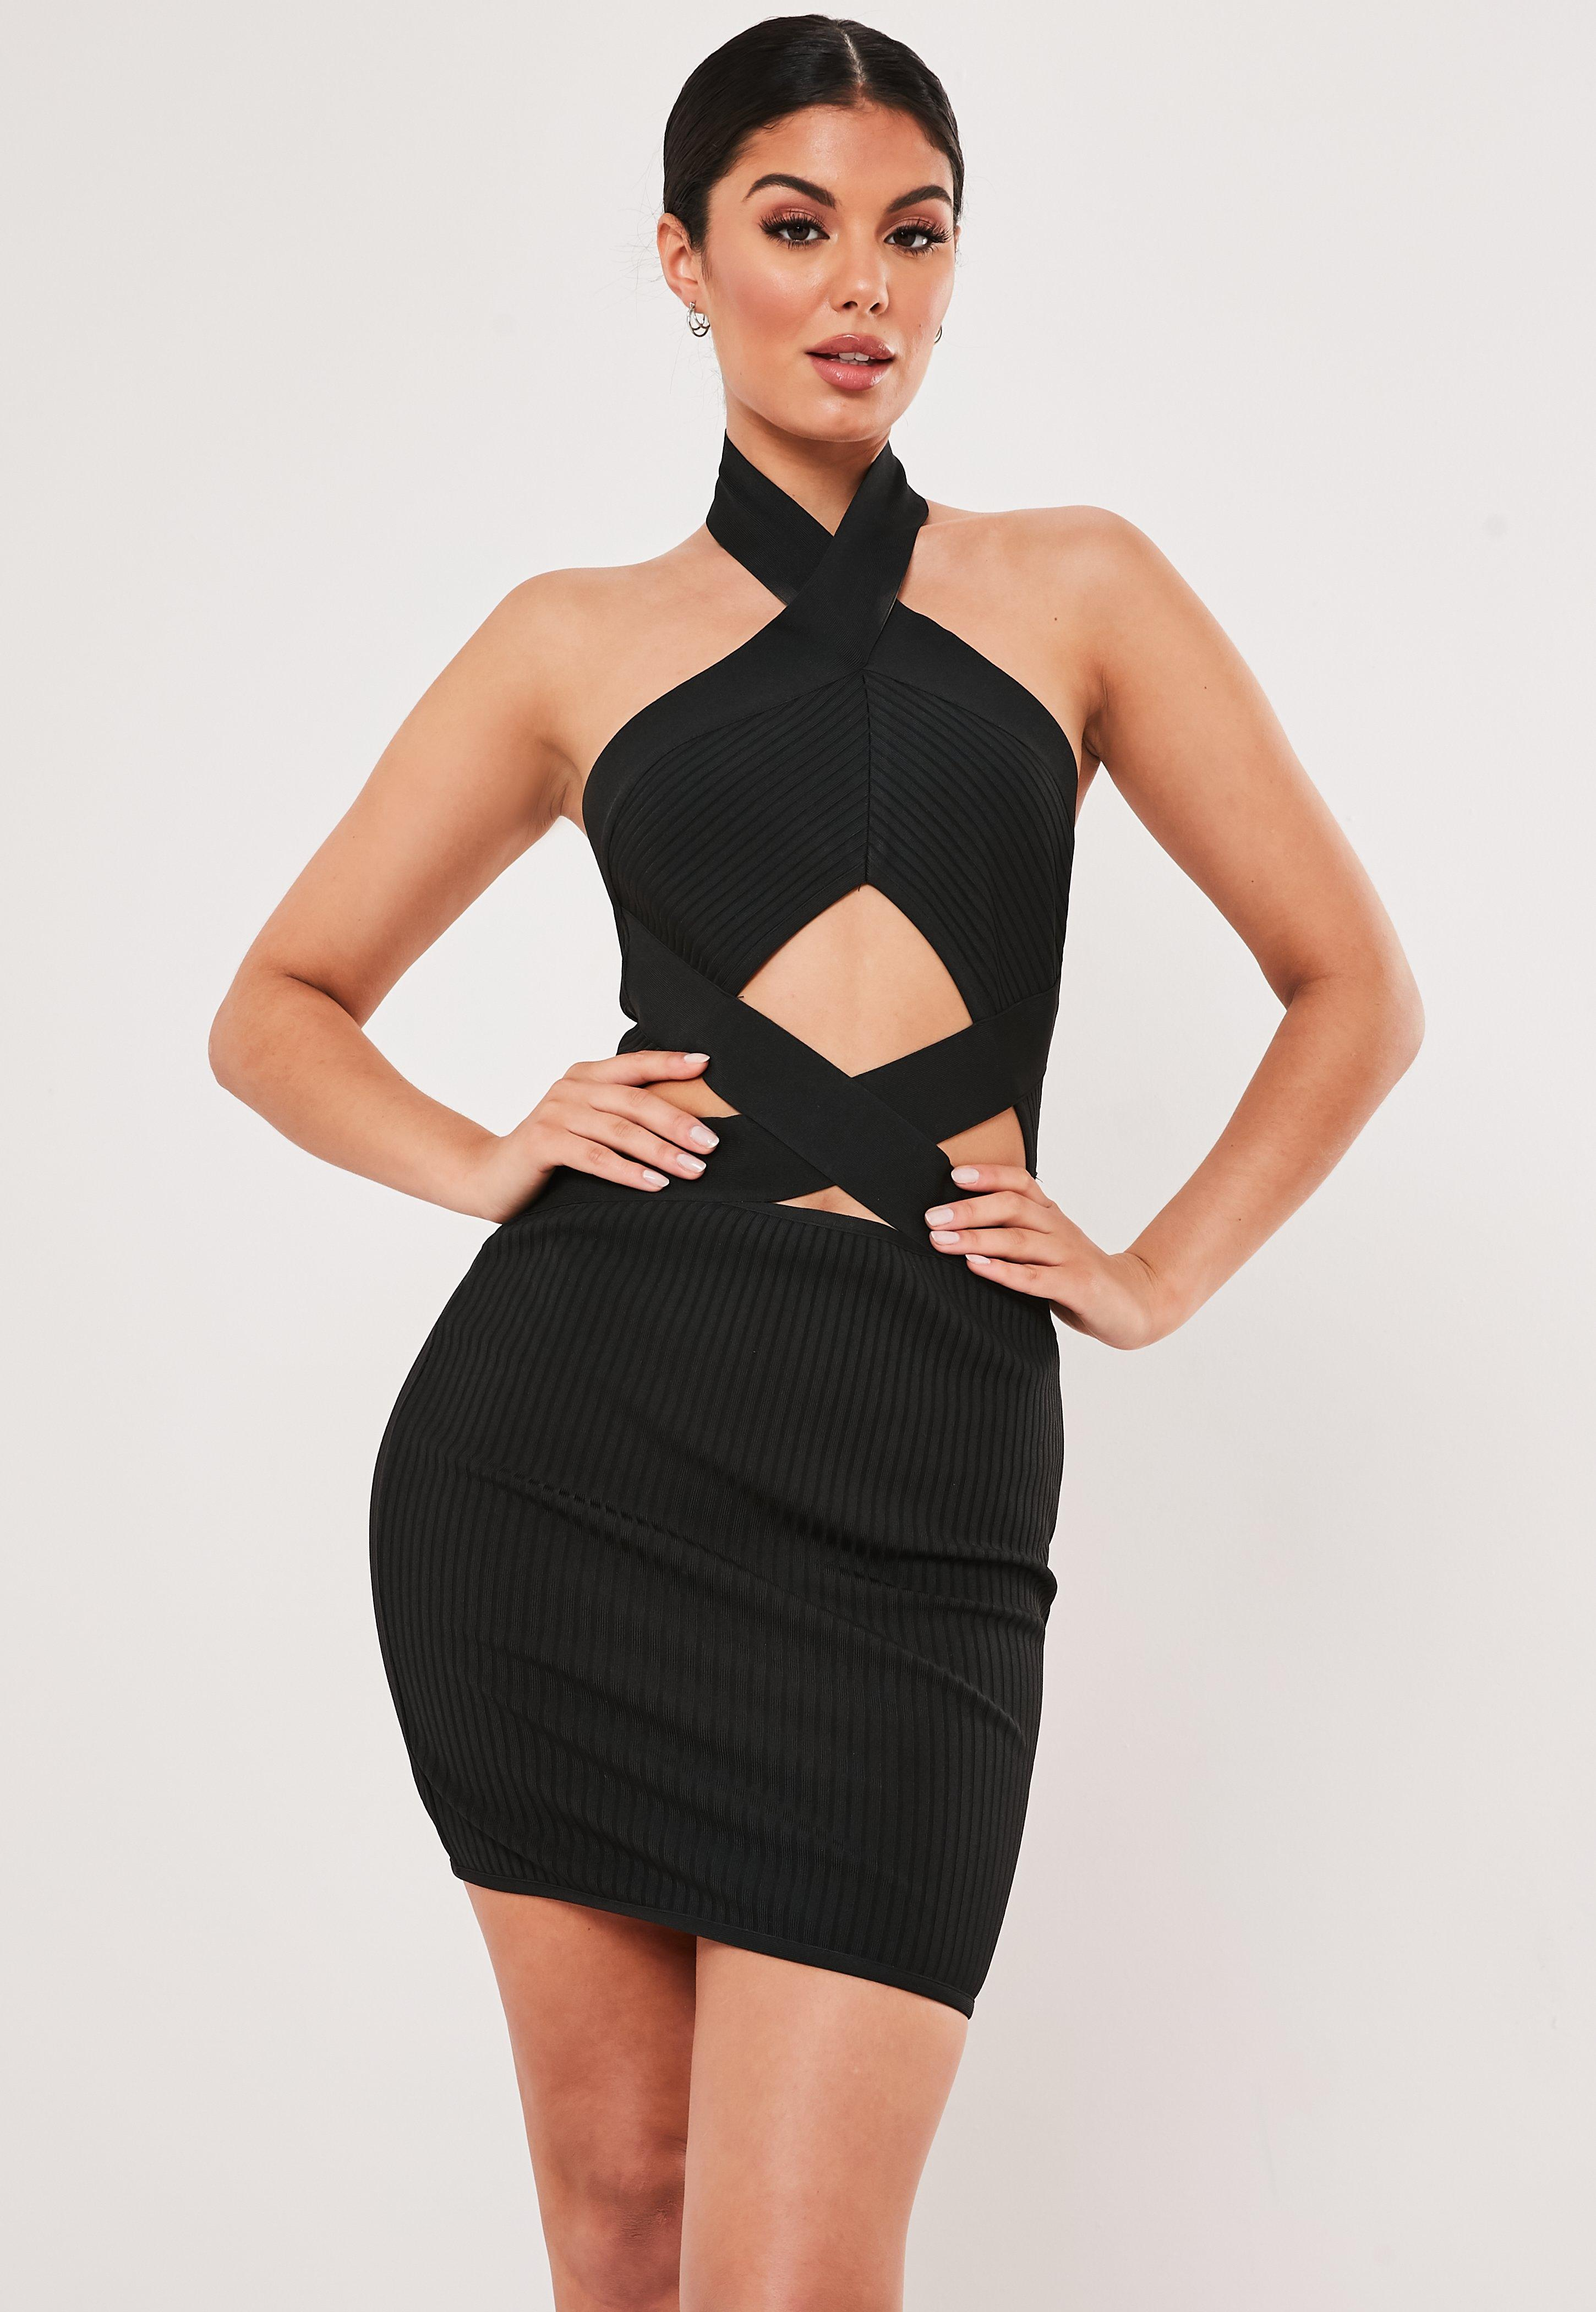 018a5c4abd20 Cut Out Dresses | Slit & Front Cut Dresses - Missguided Ireland